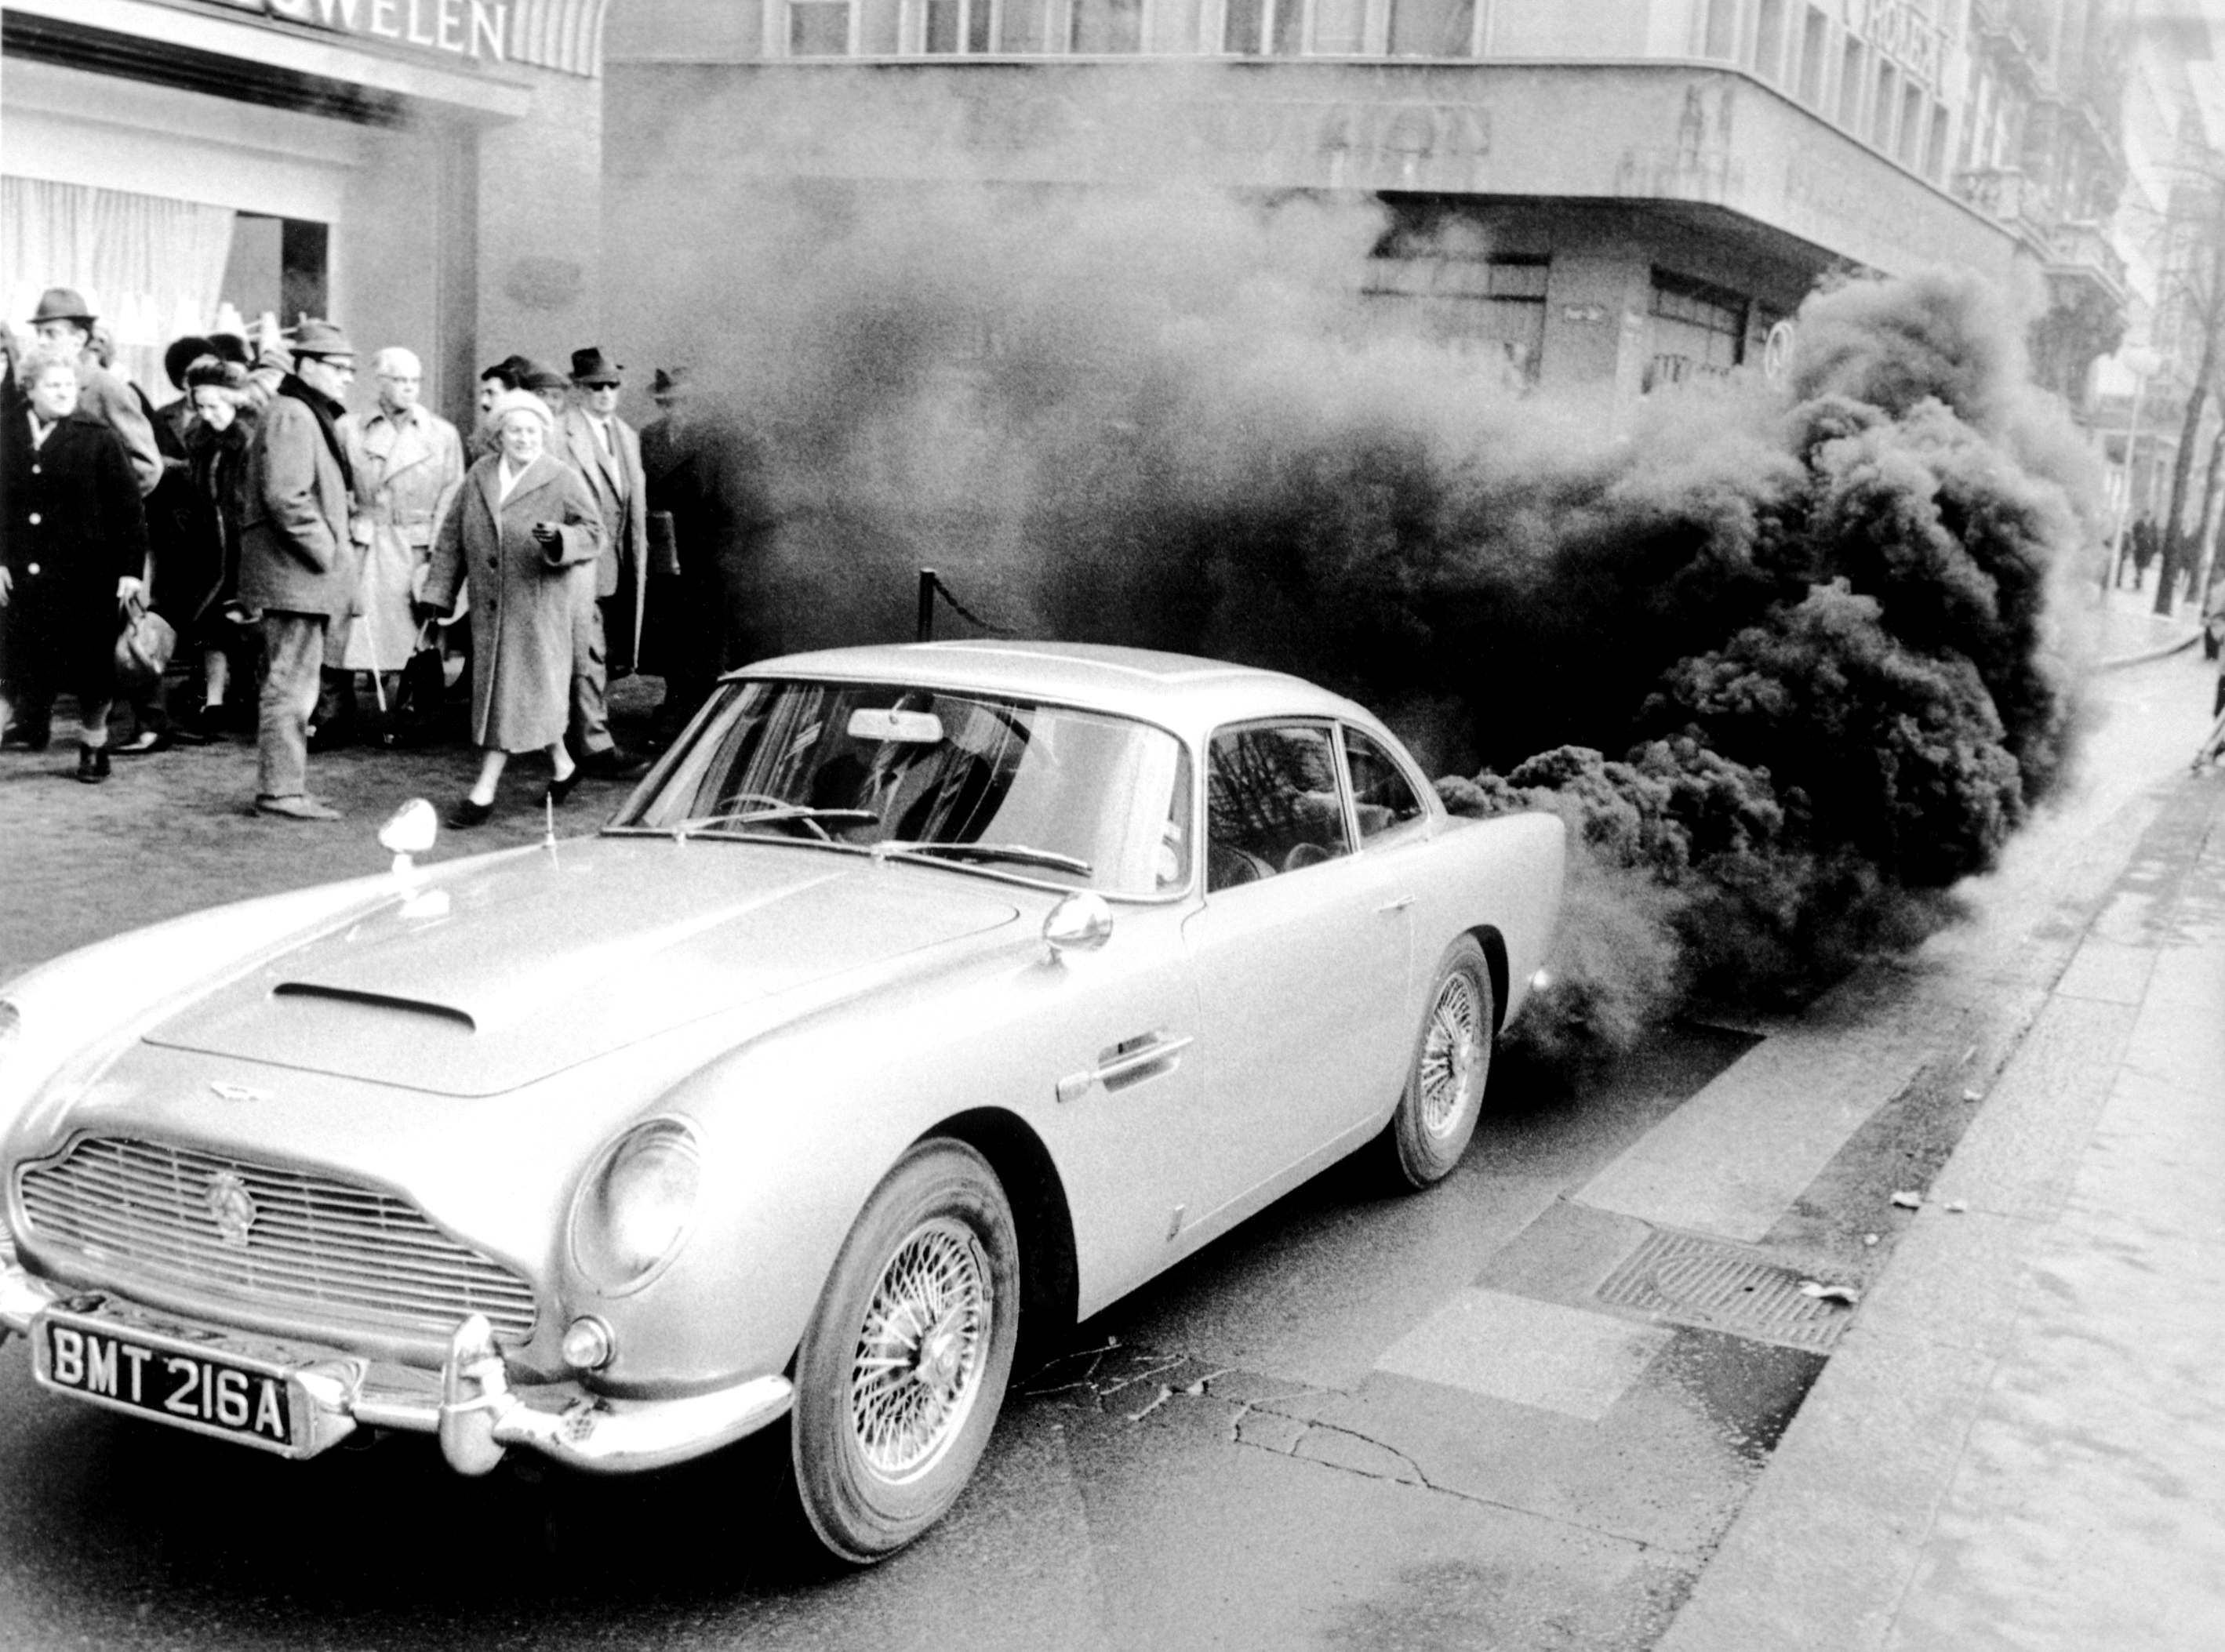 Aston Martin DB5 in Zurich, Switzerland around Feb. 16, 1965.